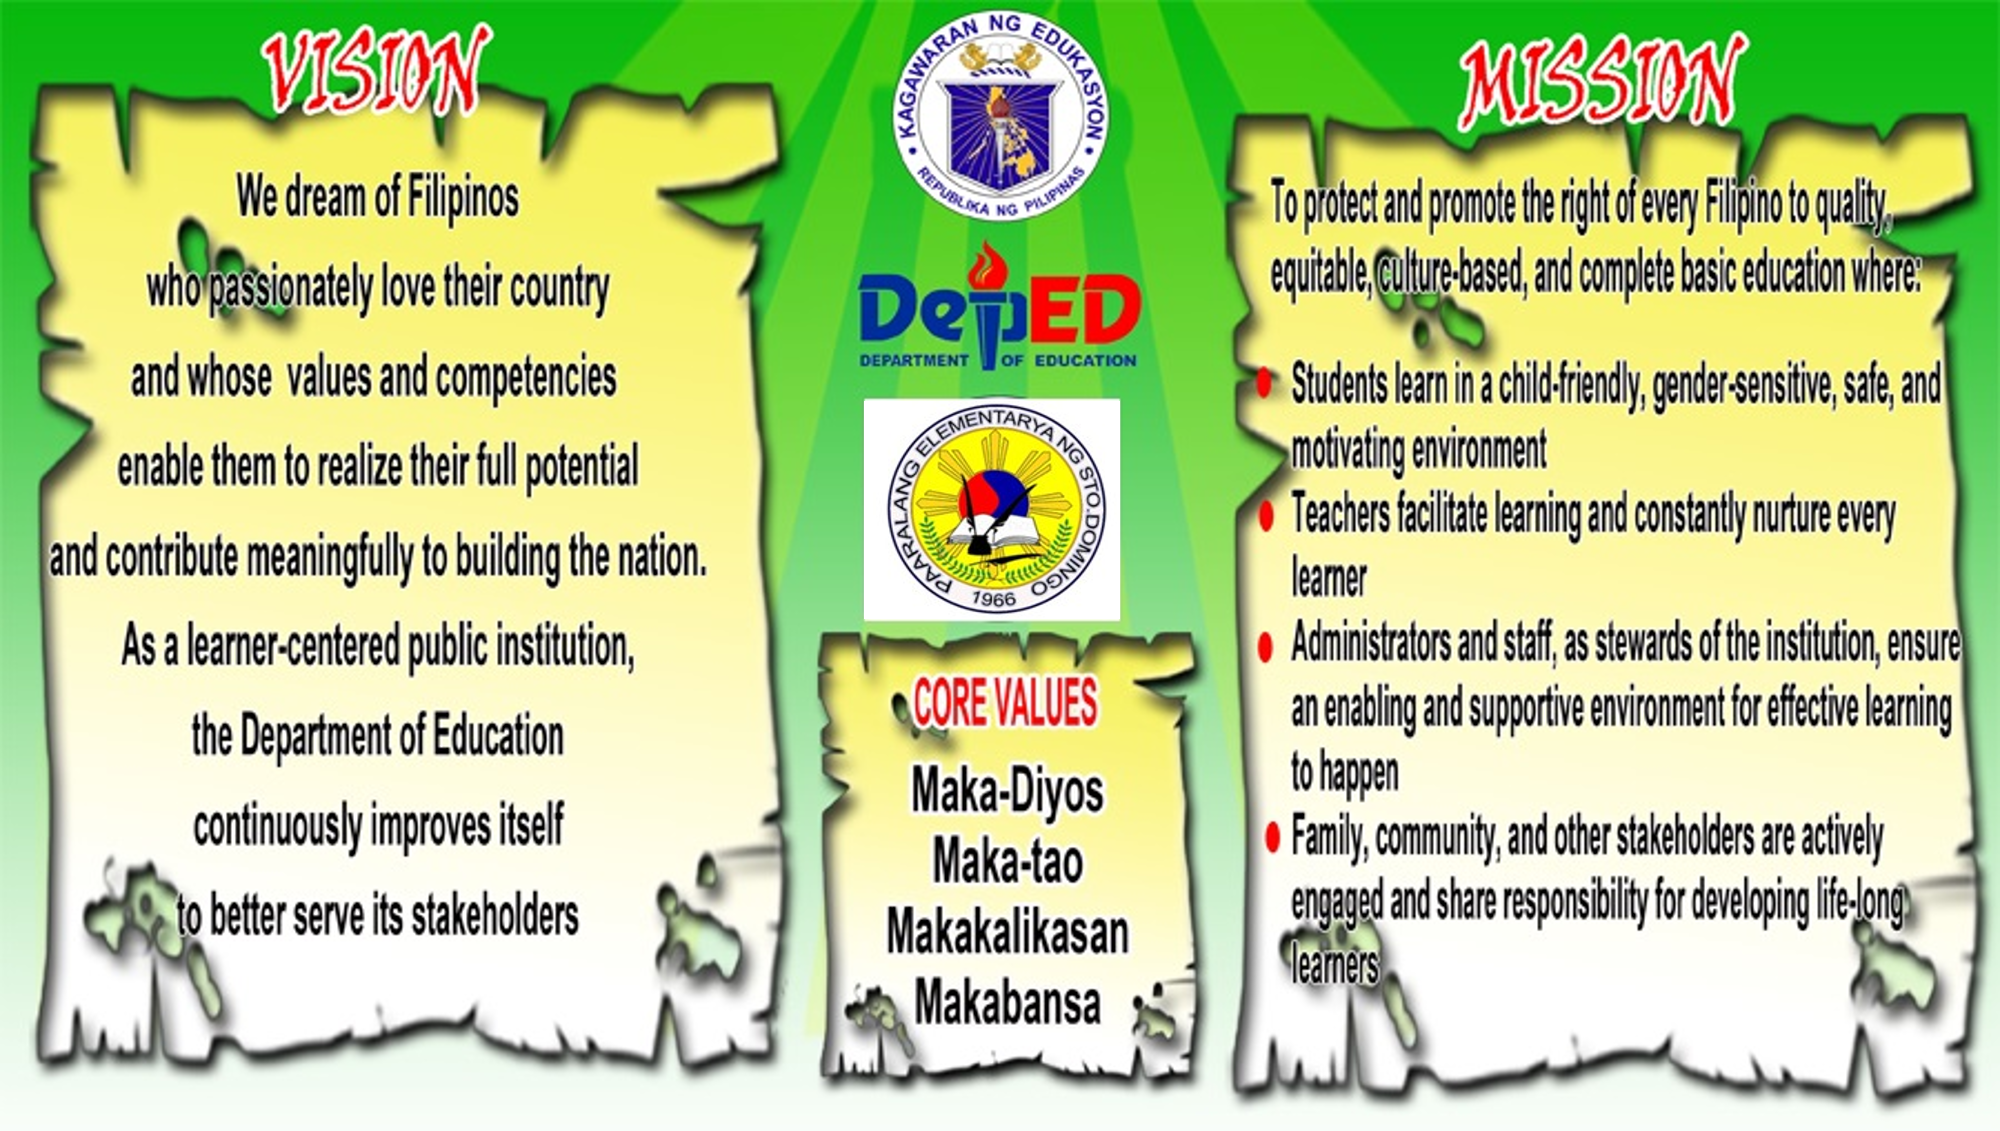 deped mission vision core values - Google Search | Memar ...